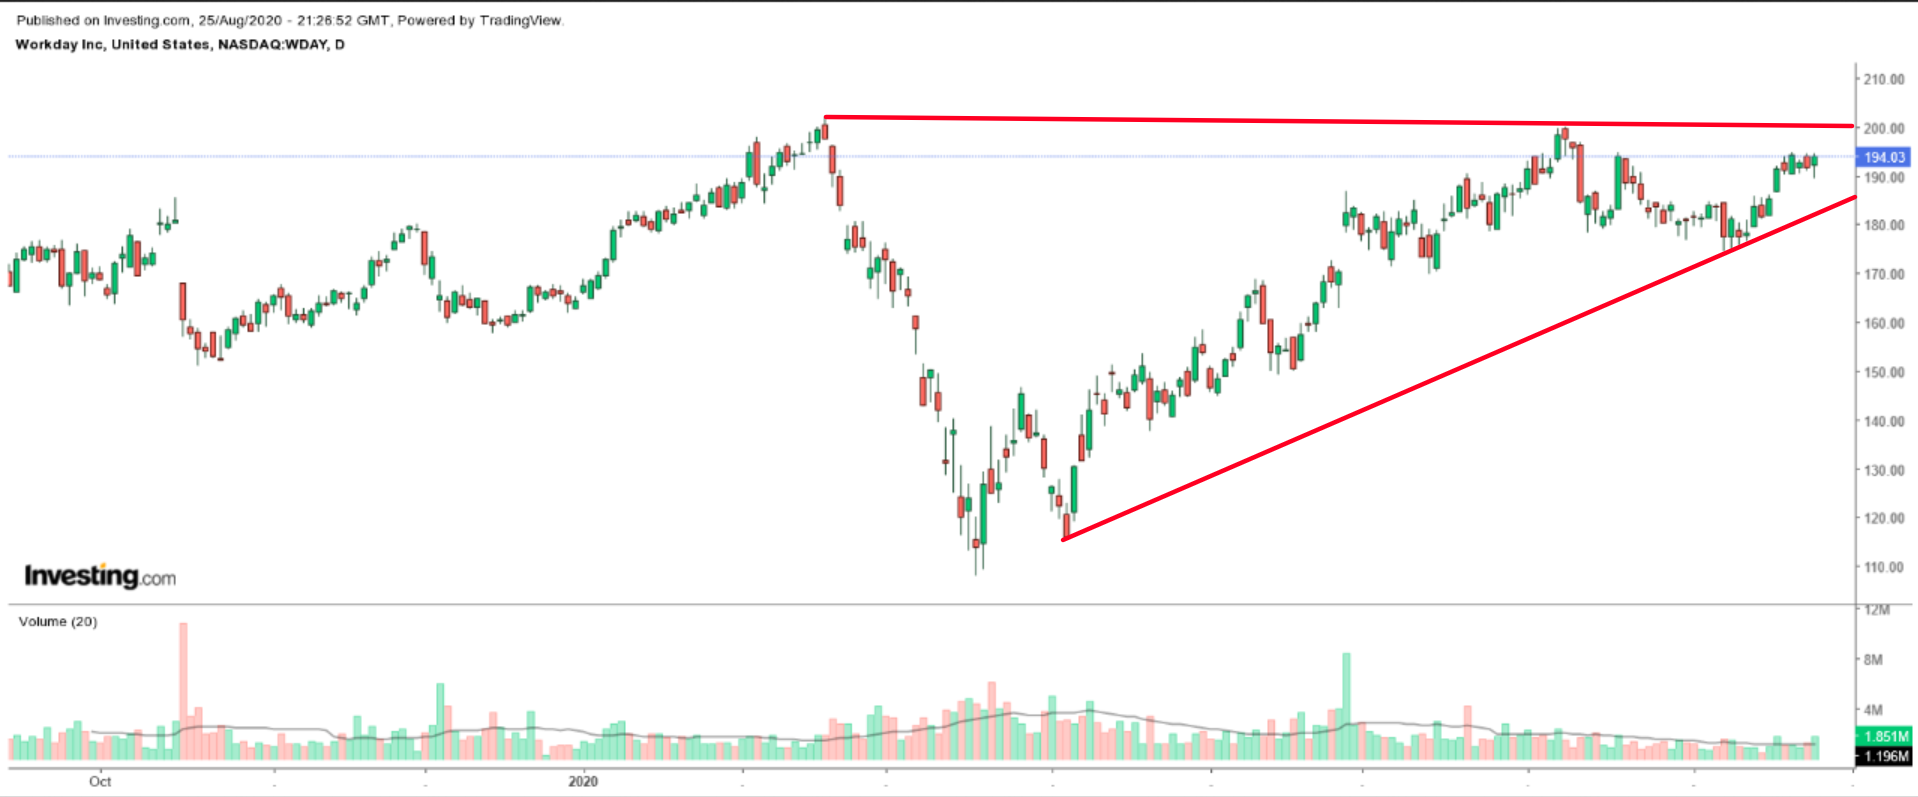 Workday Daily Chart